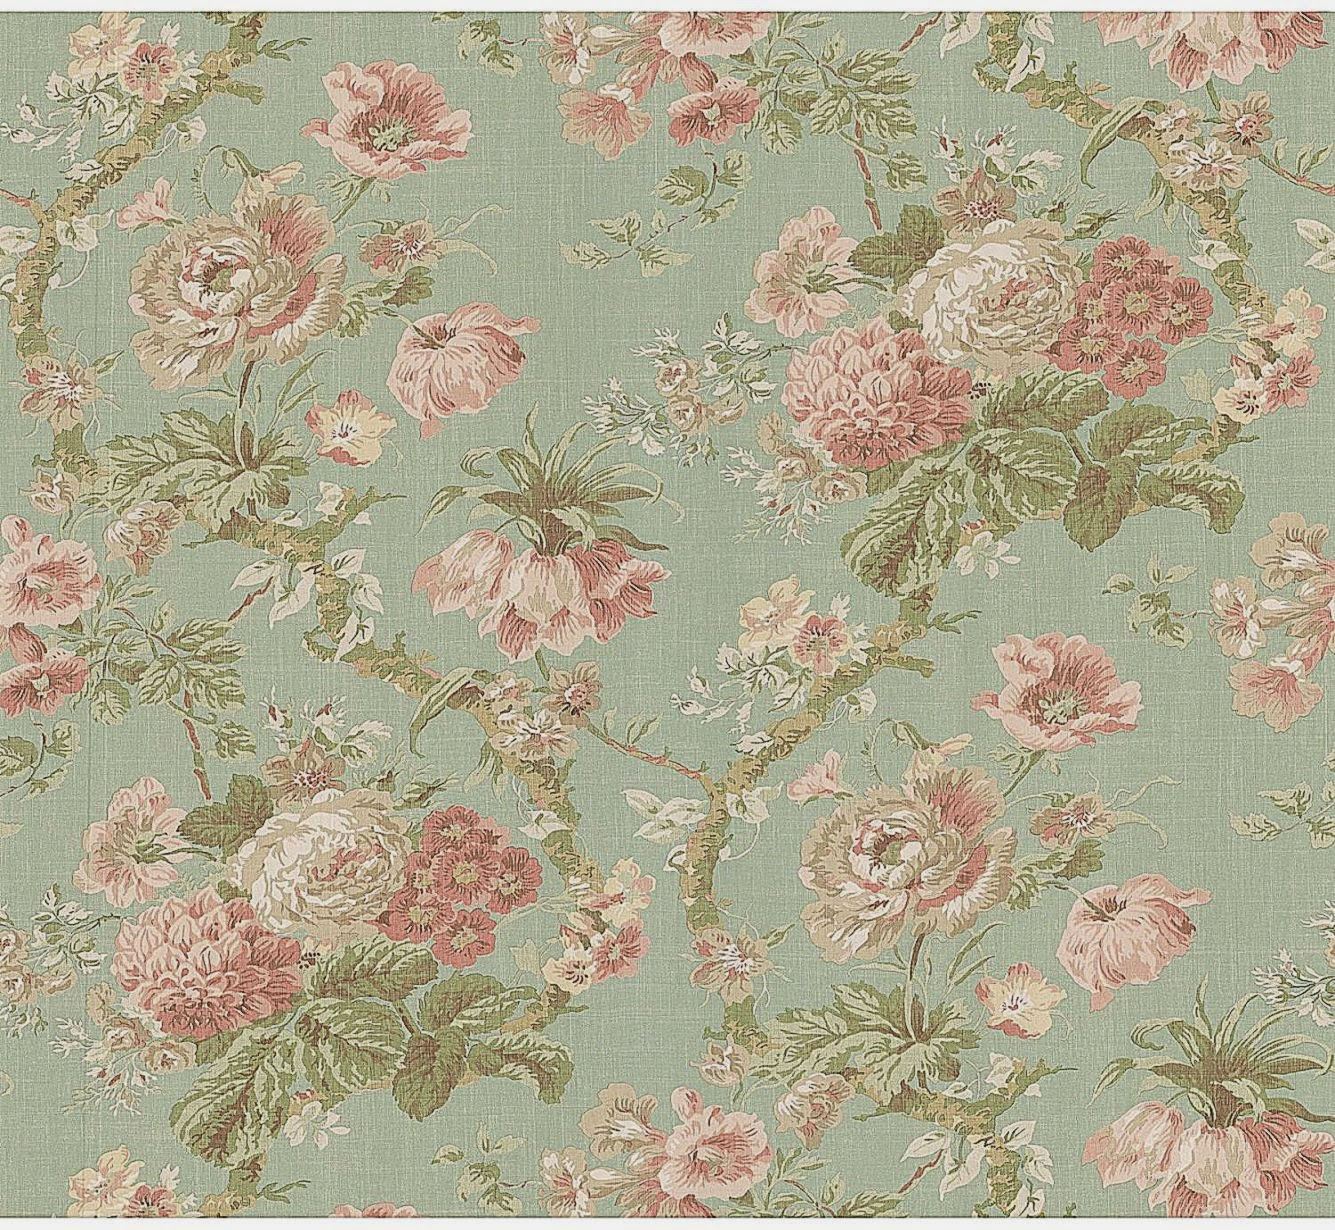 Cool   Wallpaper Home Screen Vintage - la-fleur-vintage-fl-wallpaper-30334-high-quality-and  Collection_252942.jpg